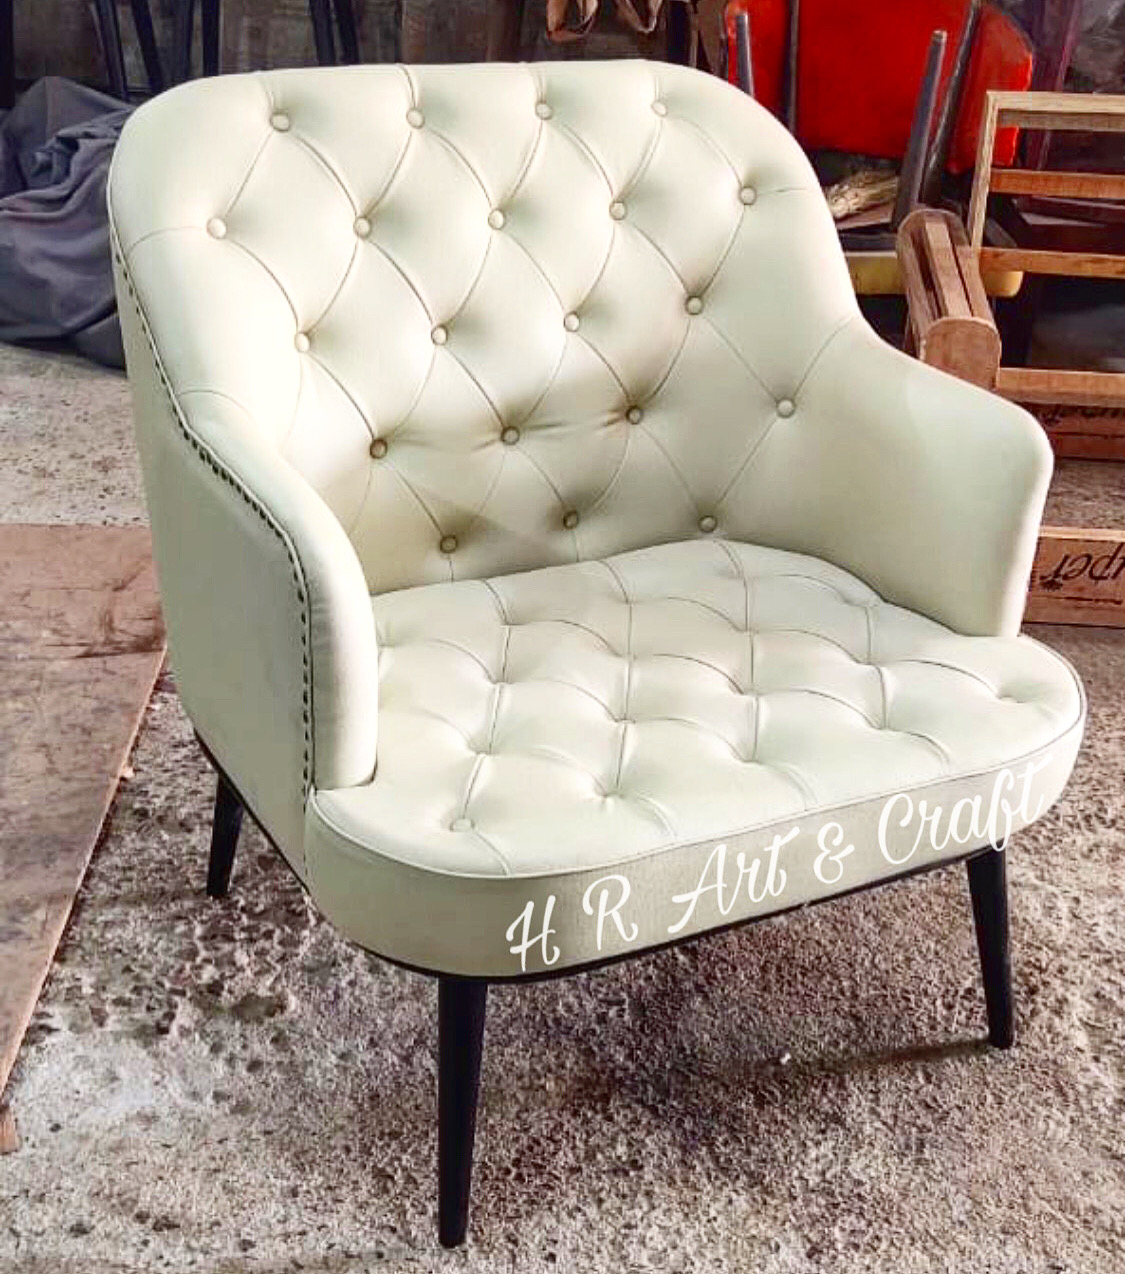 Upholstery Furniture  - Chesterfield Sofa Chair